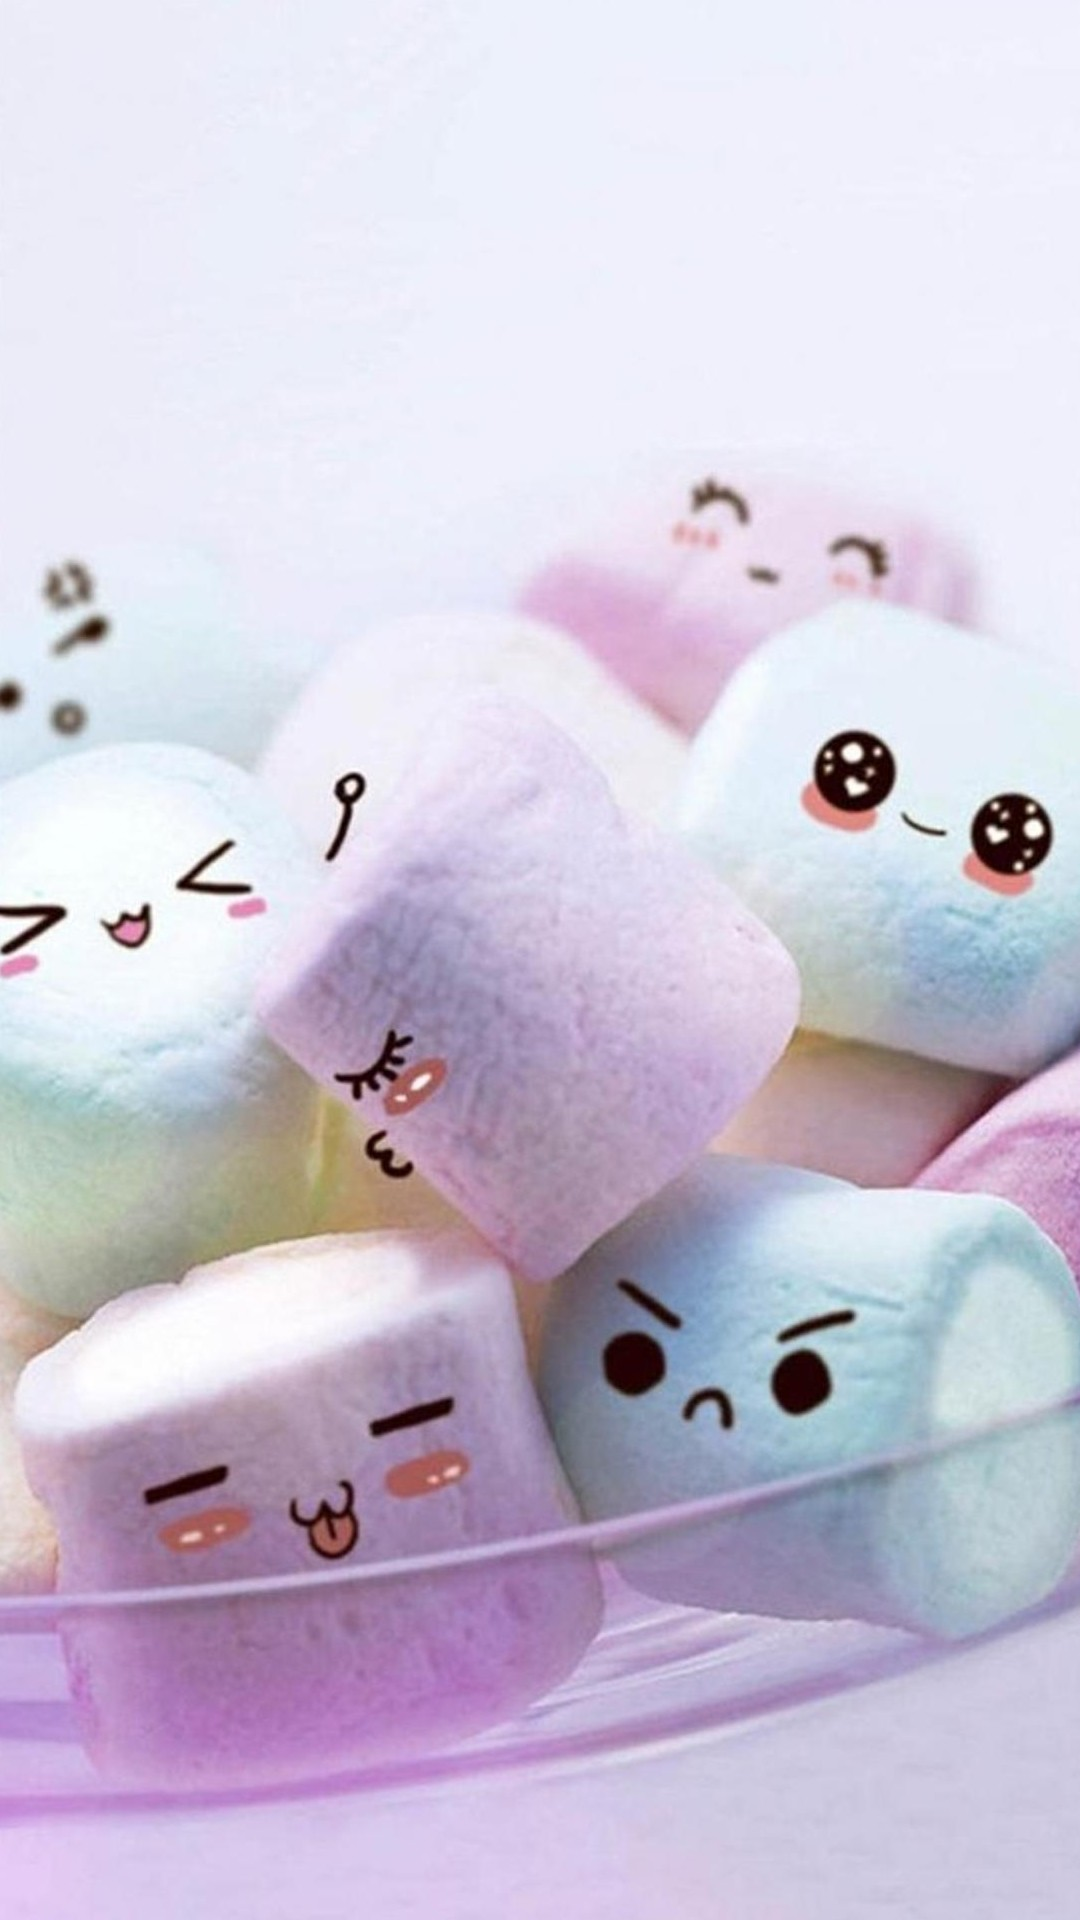 Free Download Cute Samsung Galaxy Note 3 Wallpapers 265 Samsung Galaxy 1080x1920 For Your Desktop Mobile Tablet Explore 74 Cute Wallpaper Pics Cute Wallpapers For Laptops Cute Wallpapers For Girls Cute Wallpapers Tumblr